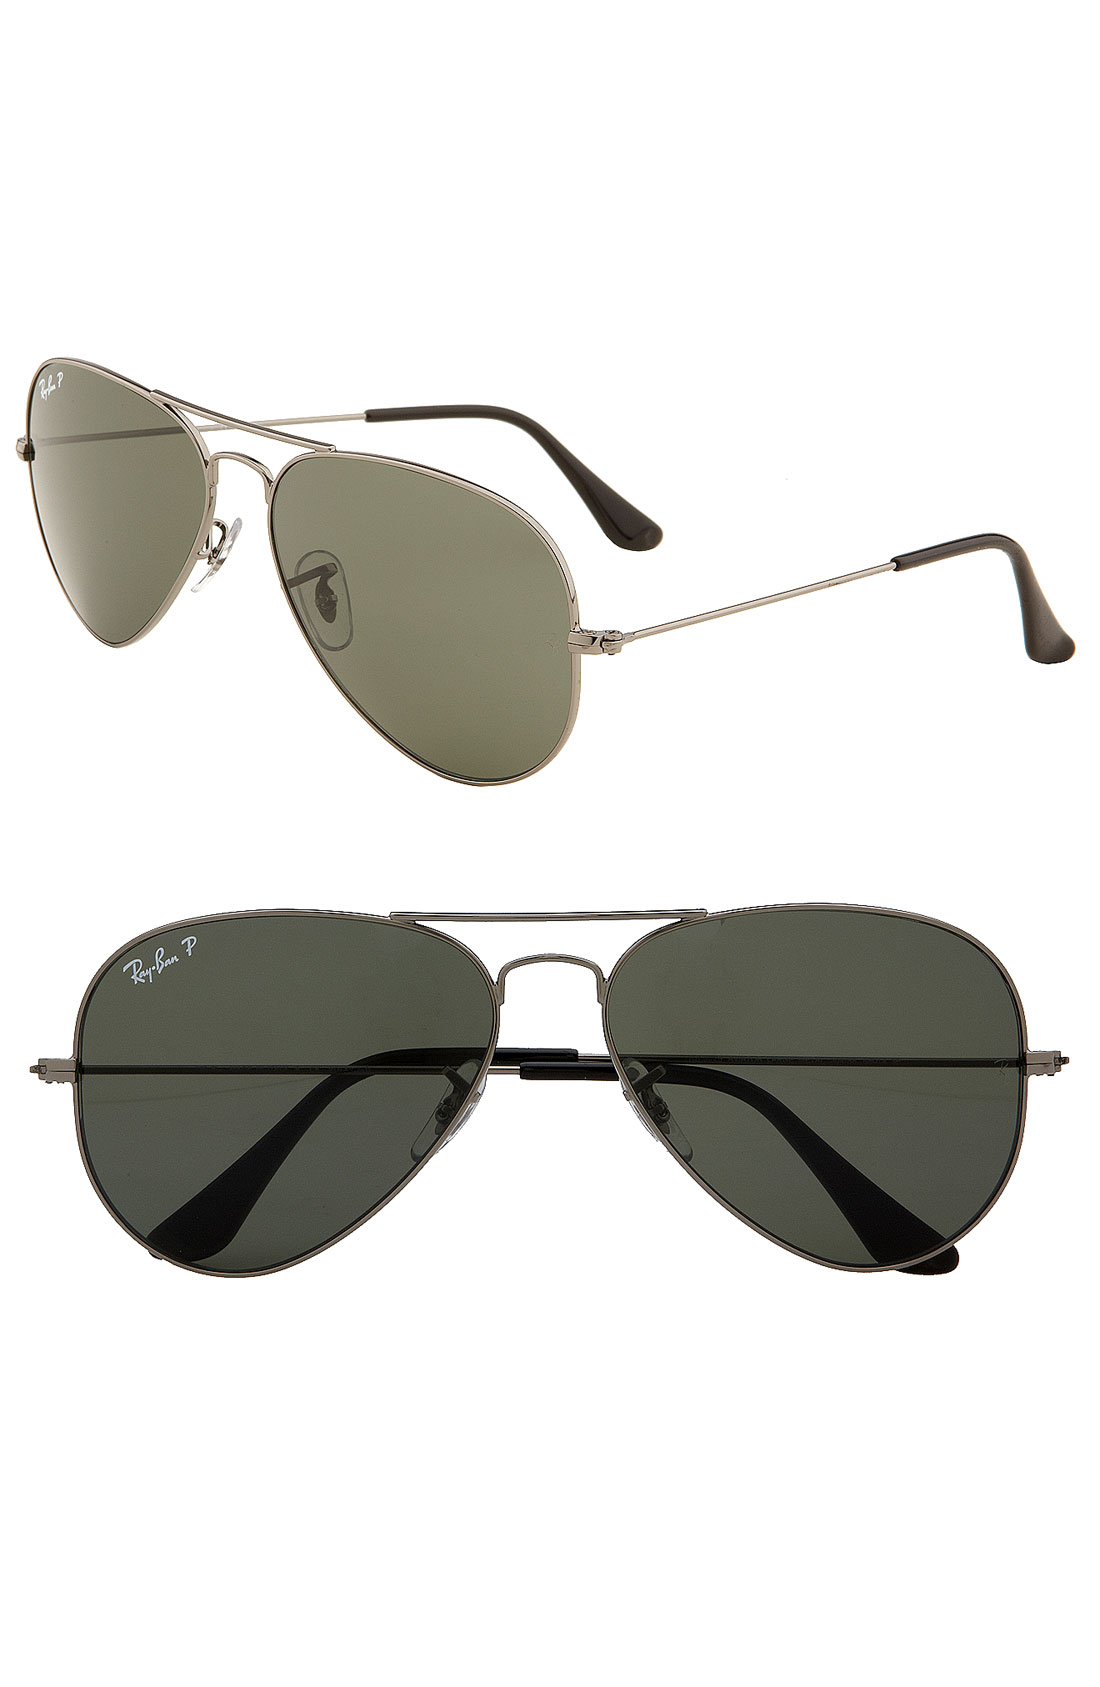 05d59cb1c1 Ray Ban Aviator Polarised Sunglasses « Heritage Malta